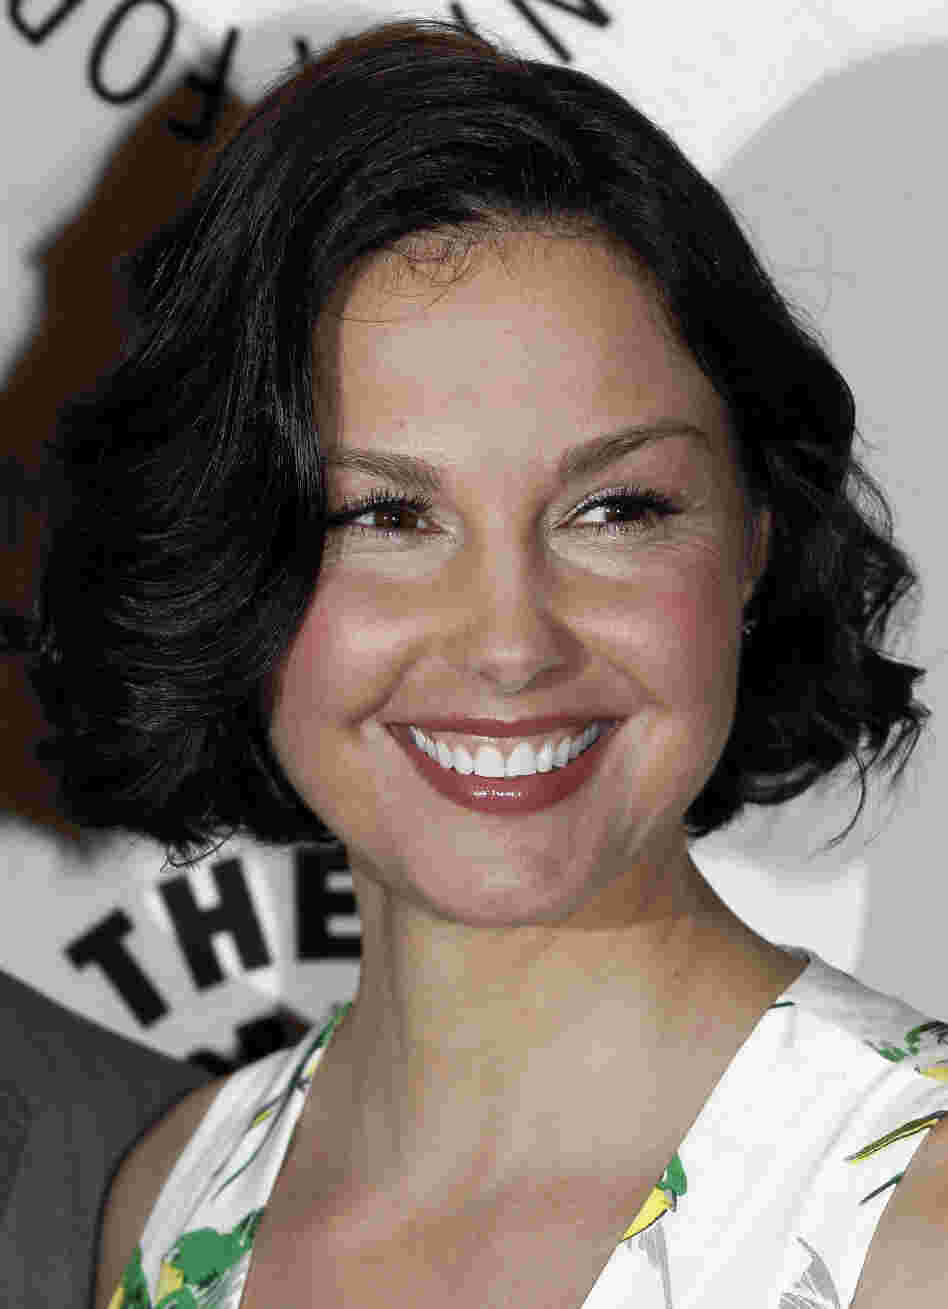 Ashley Judd, who has said she's considering a challenge to Senate Minority Leader Mitch McConnell in Kentucky, is now the subject of a Karl Rove-backed attack ad.